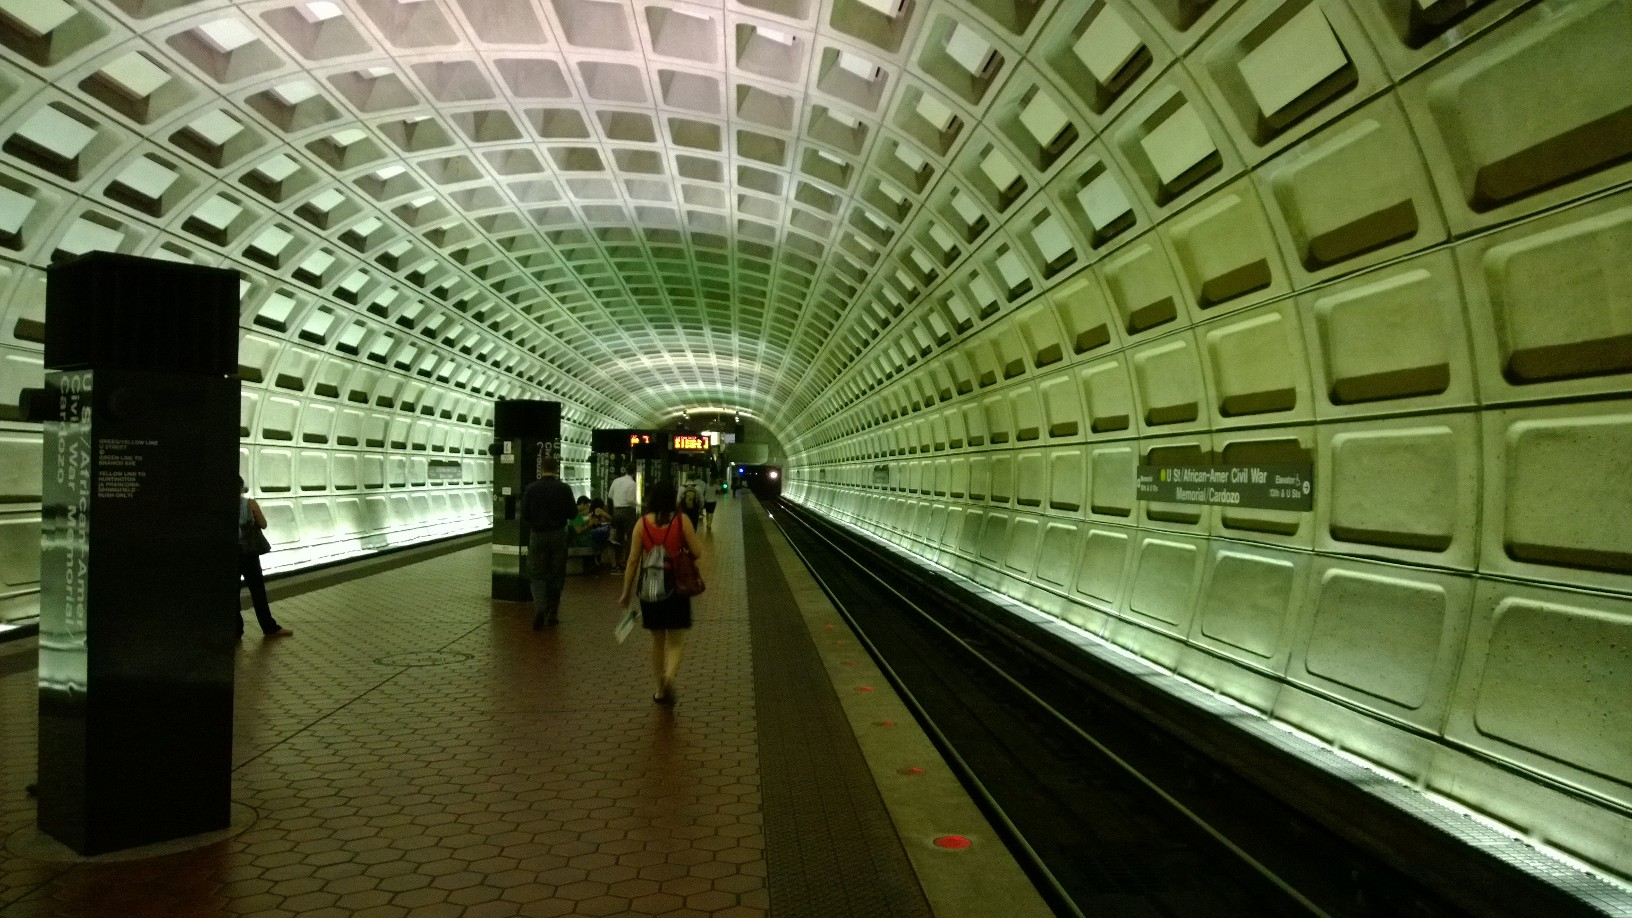 Washington Metro via AT&T's Nokia Lumia 1020